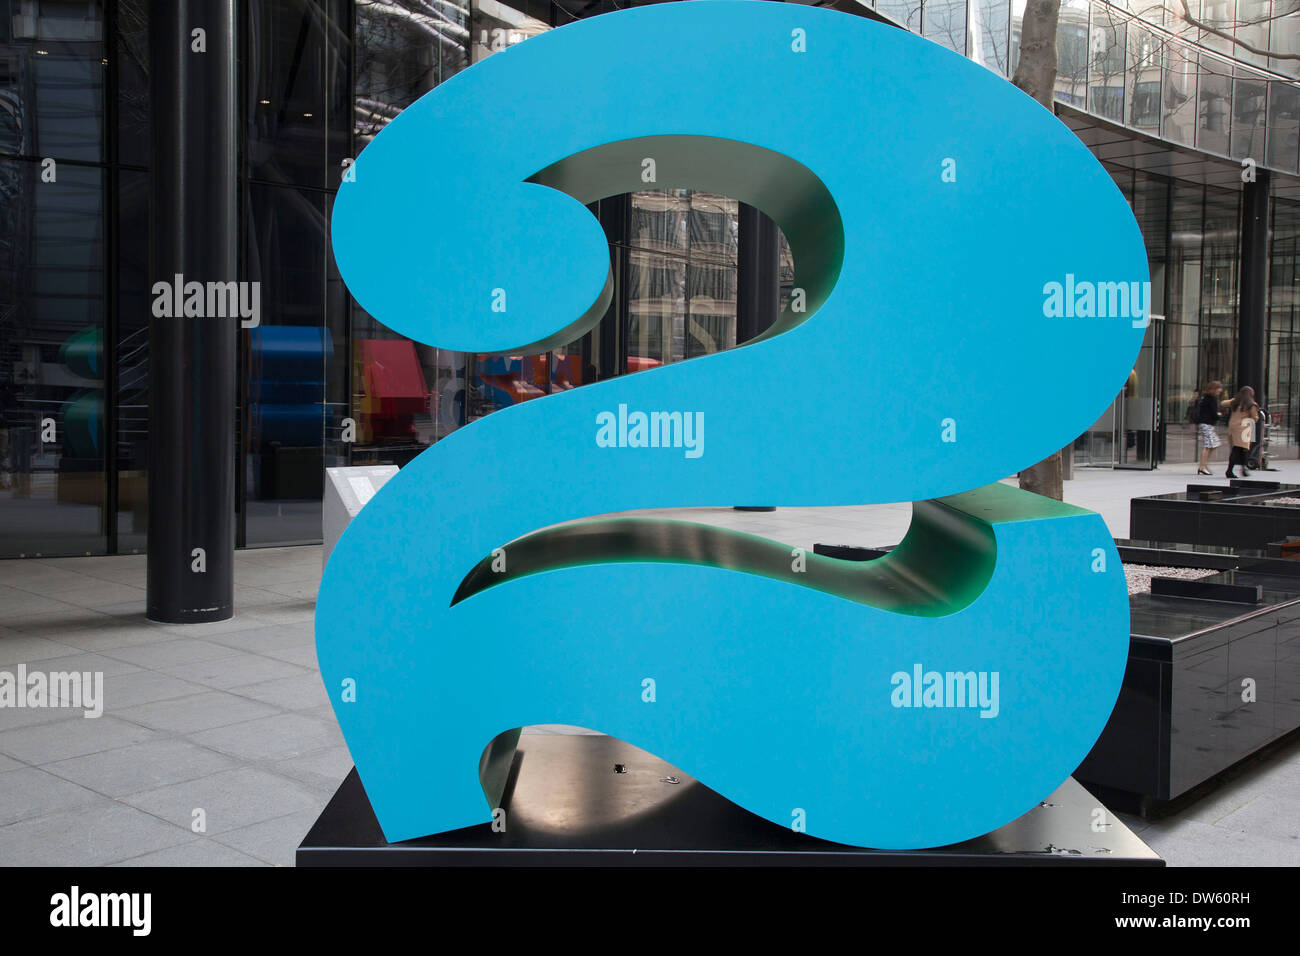 'One Through Zero (The Ten Numbers)' by American pop artist Robert Indiana (b 1928), in Lime Street, City of London, Stock Photo